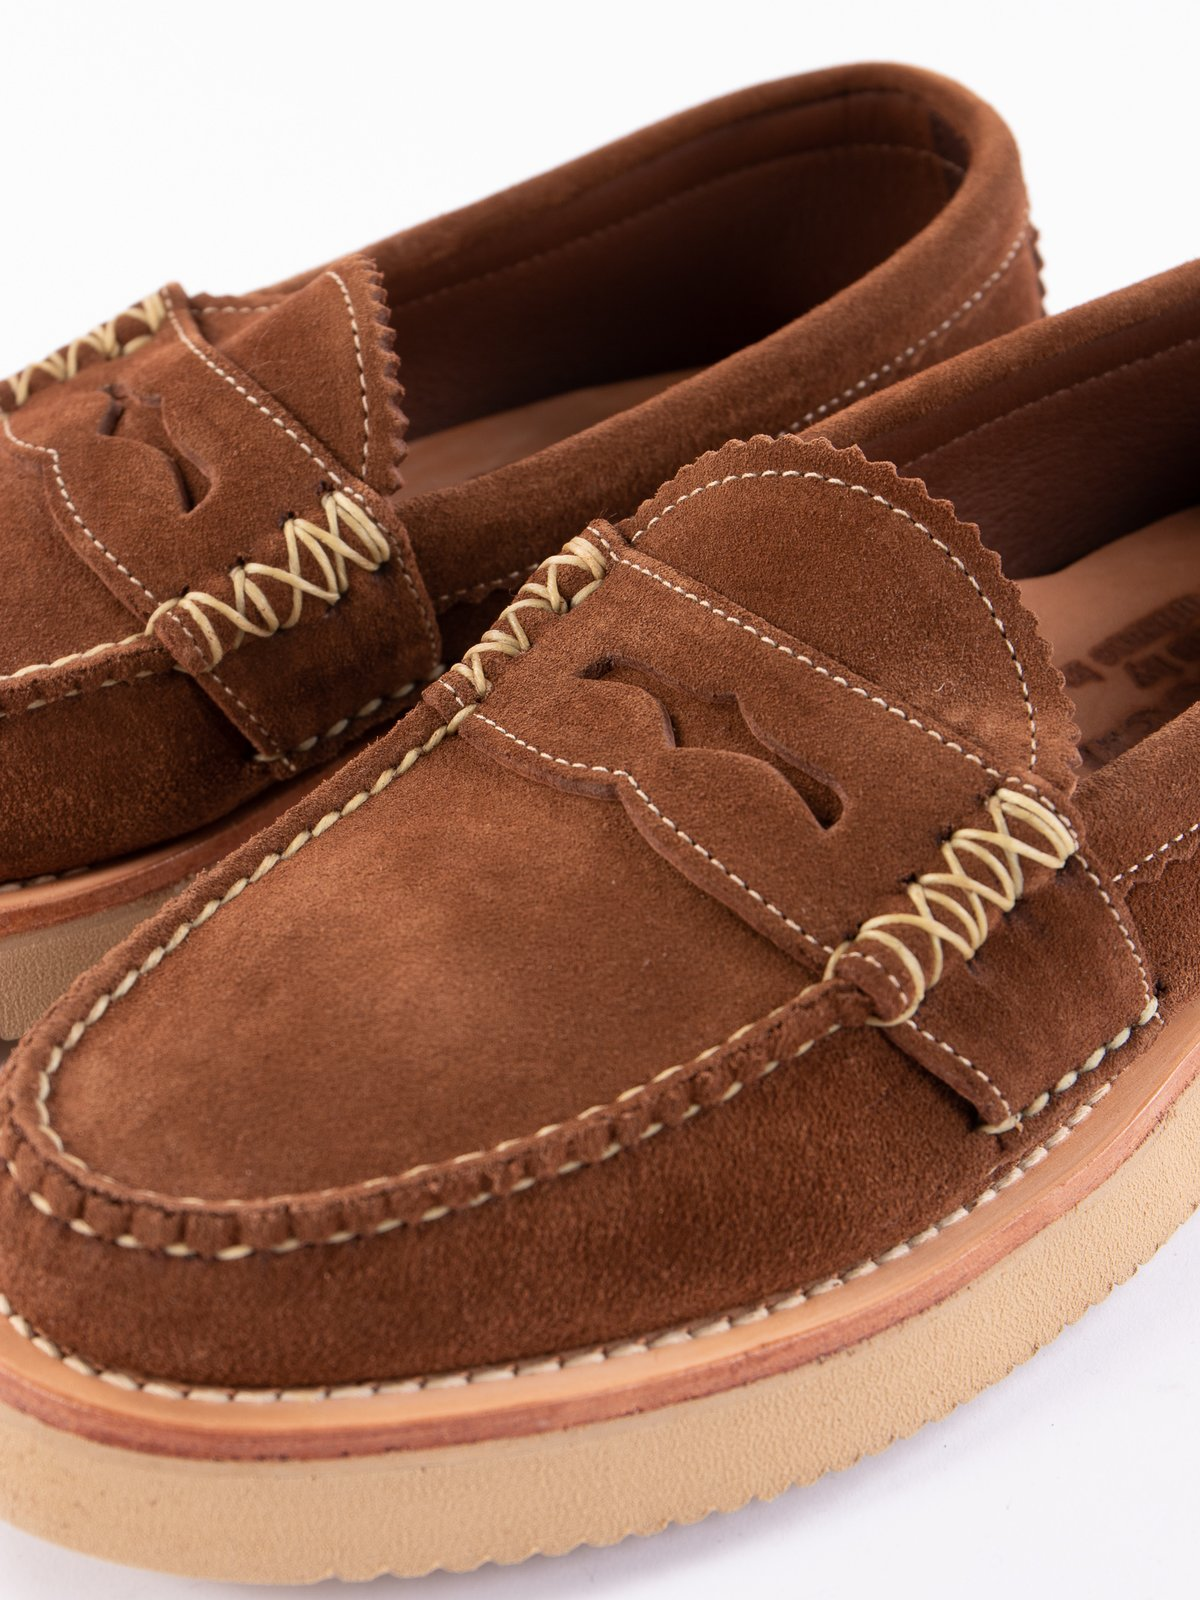 FO Snuff Loafer w/2021 Sole Exclusive - Image 3